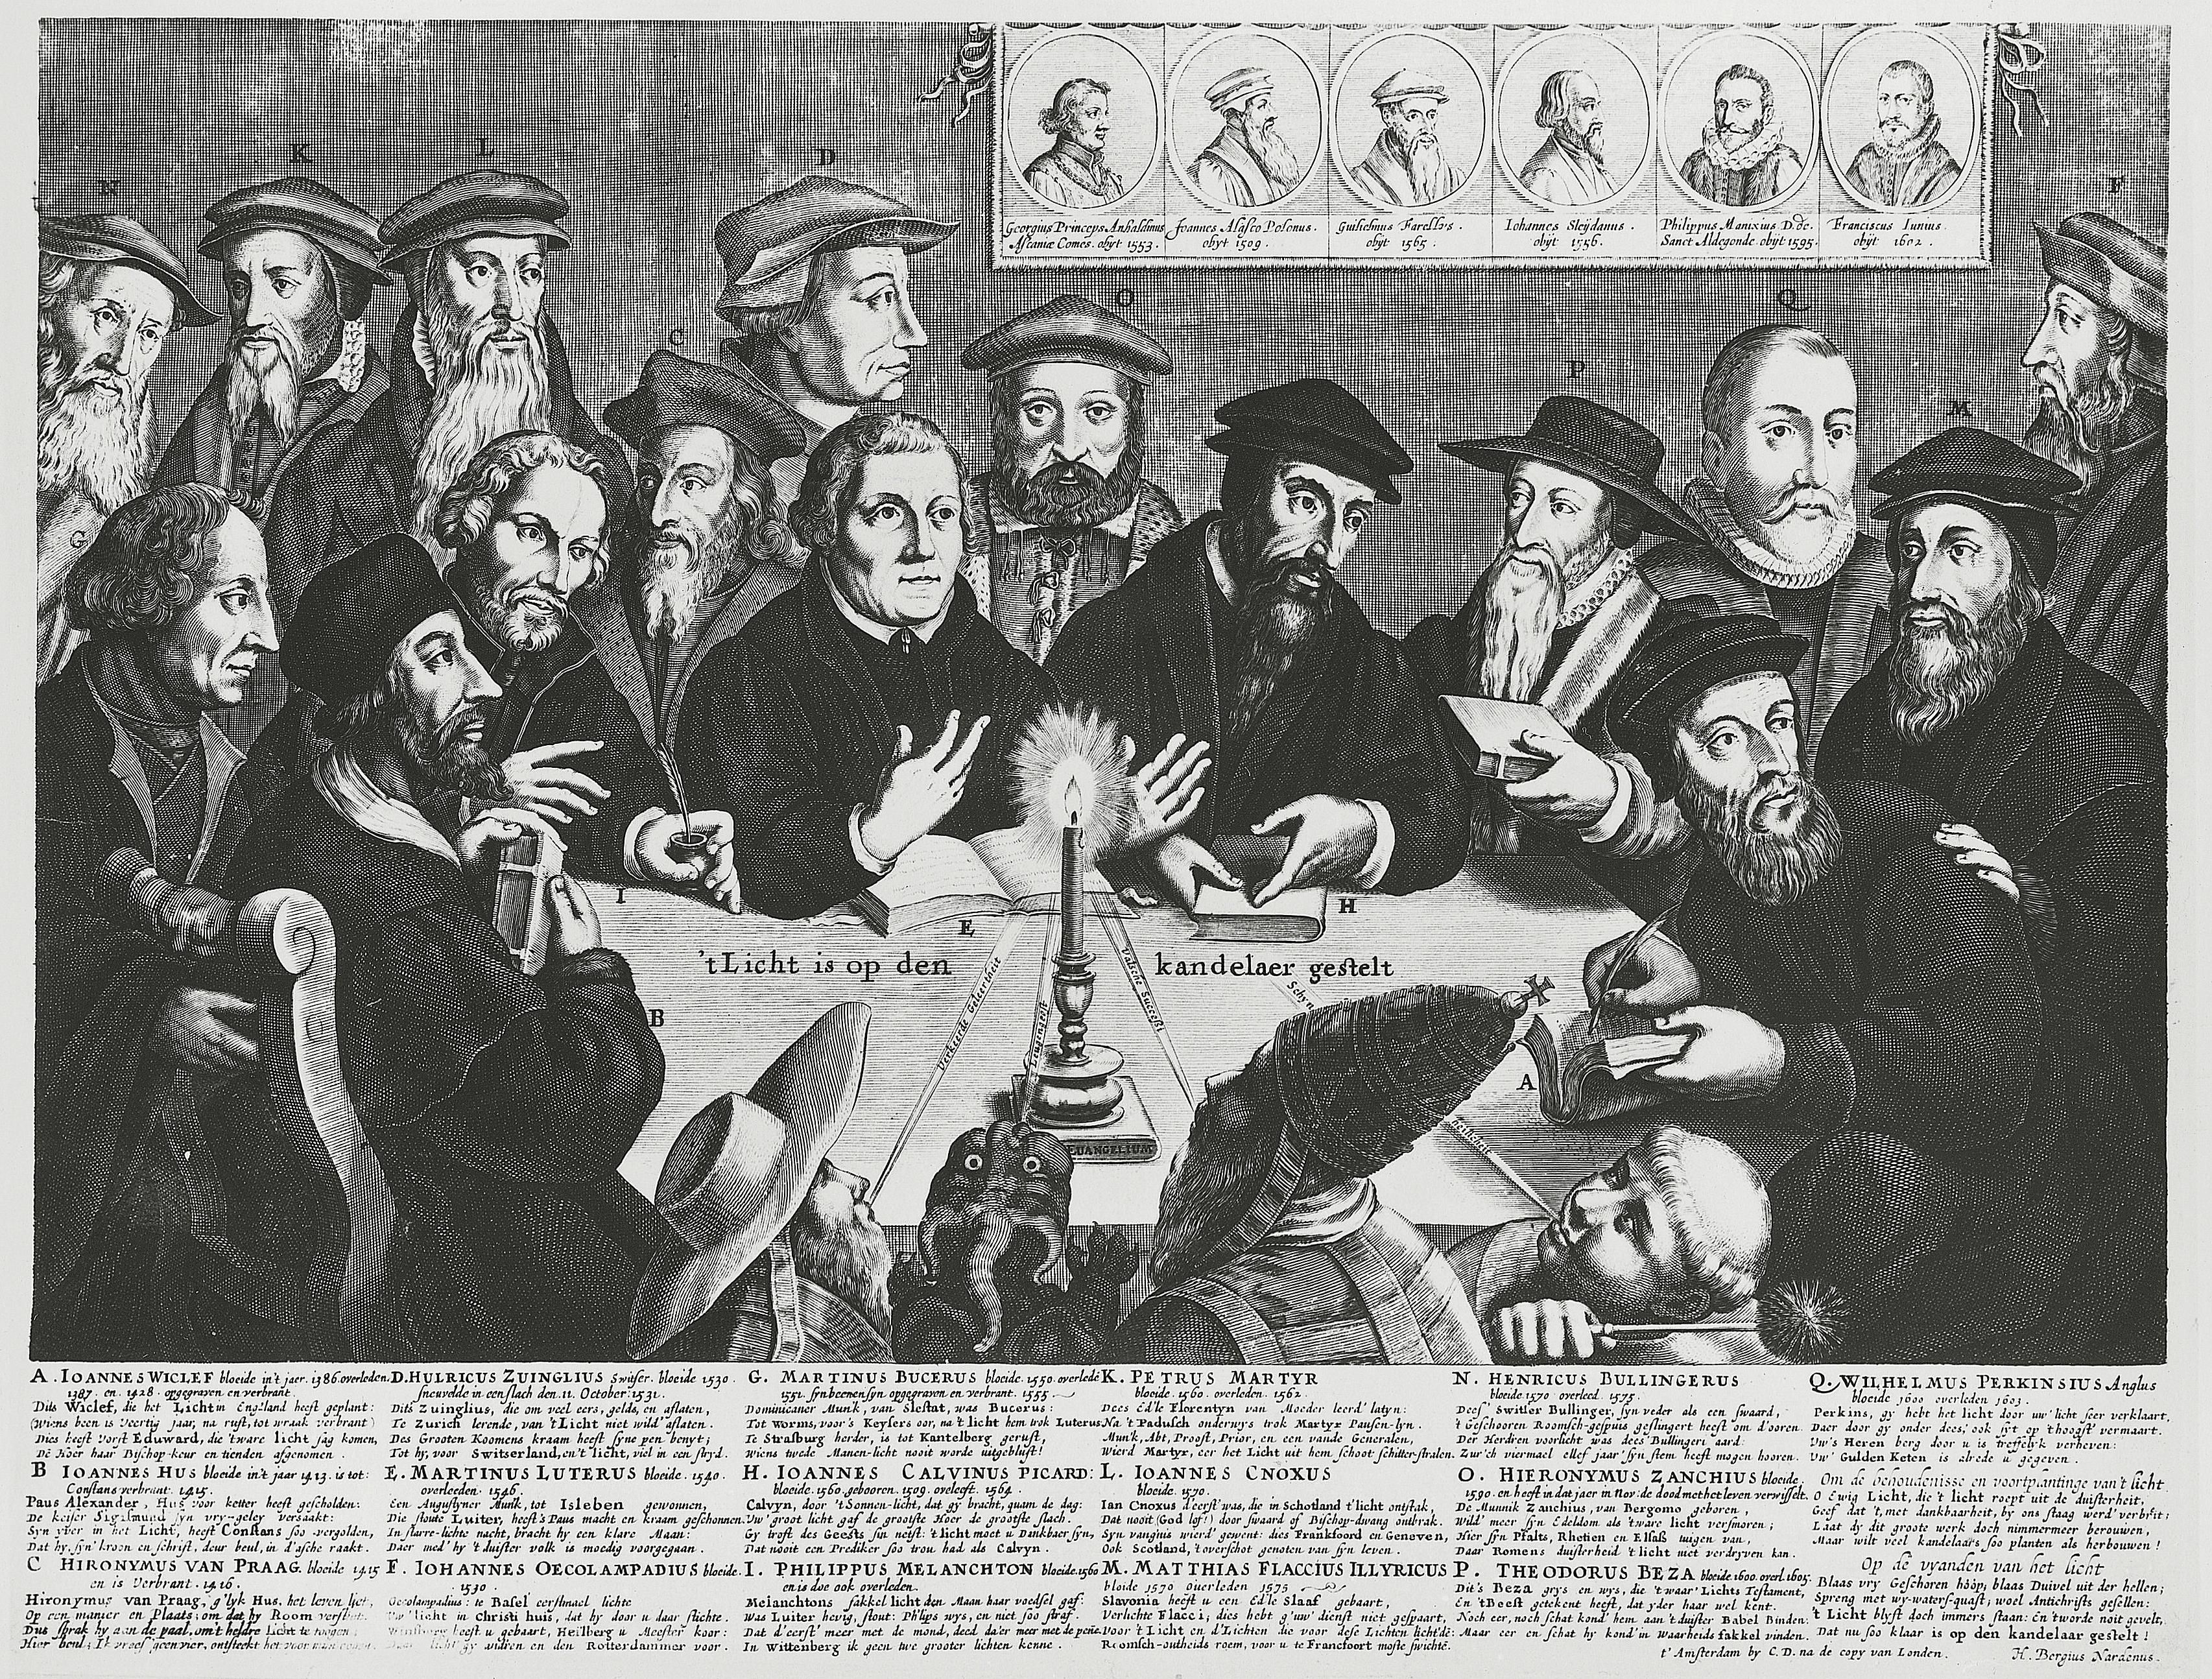 Illustration of the Great Reformers